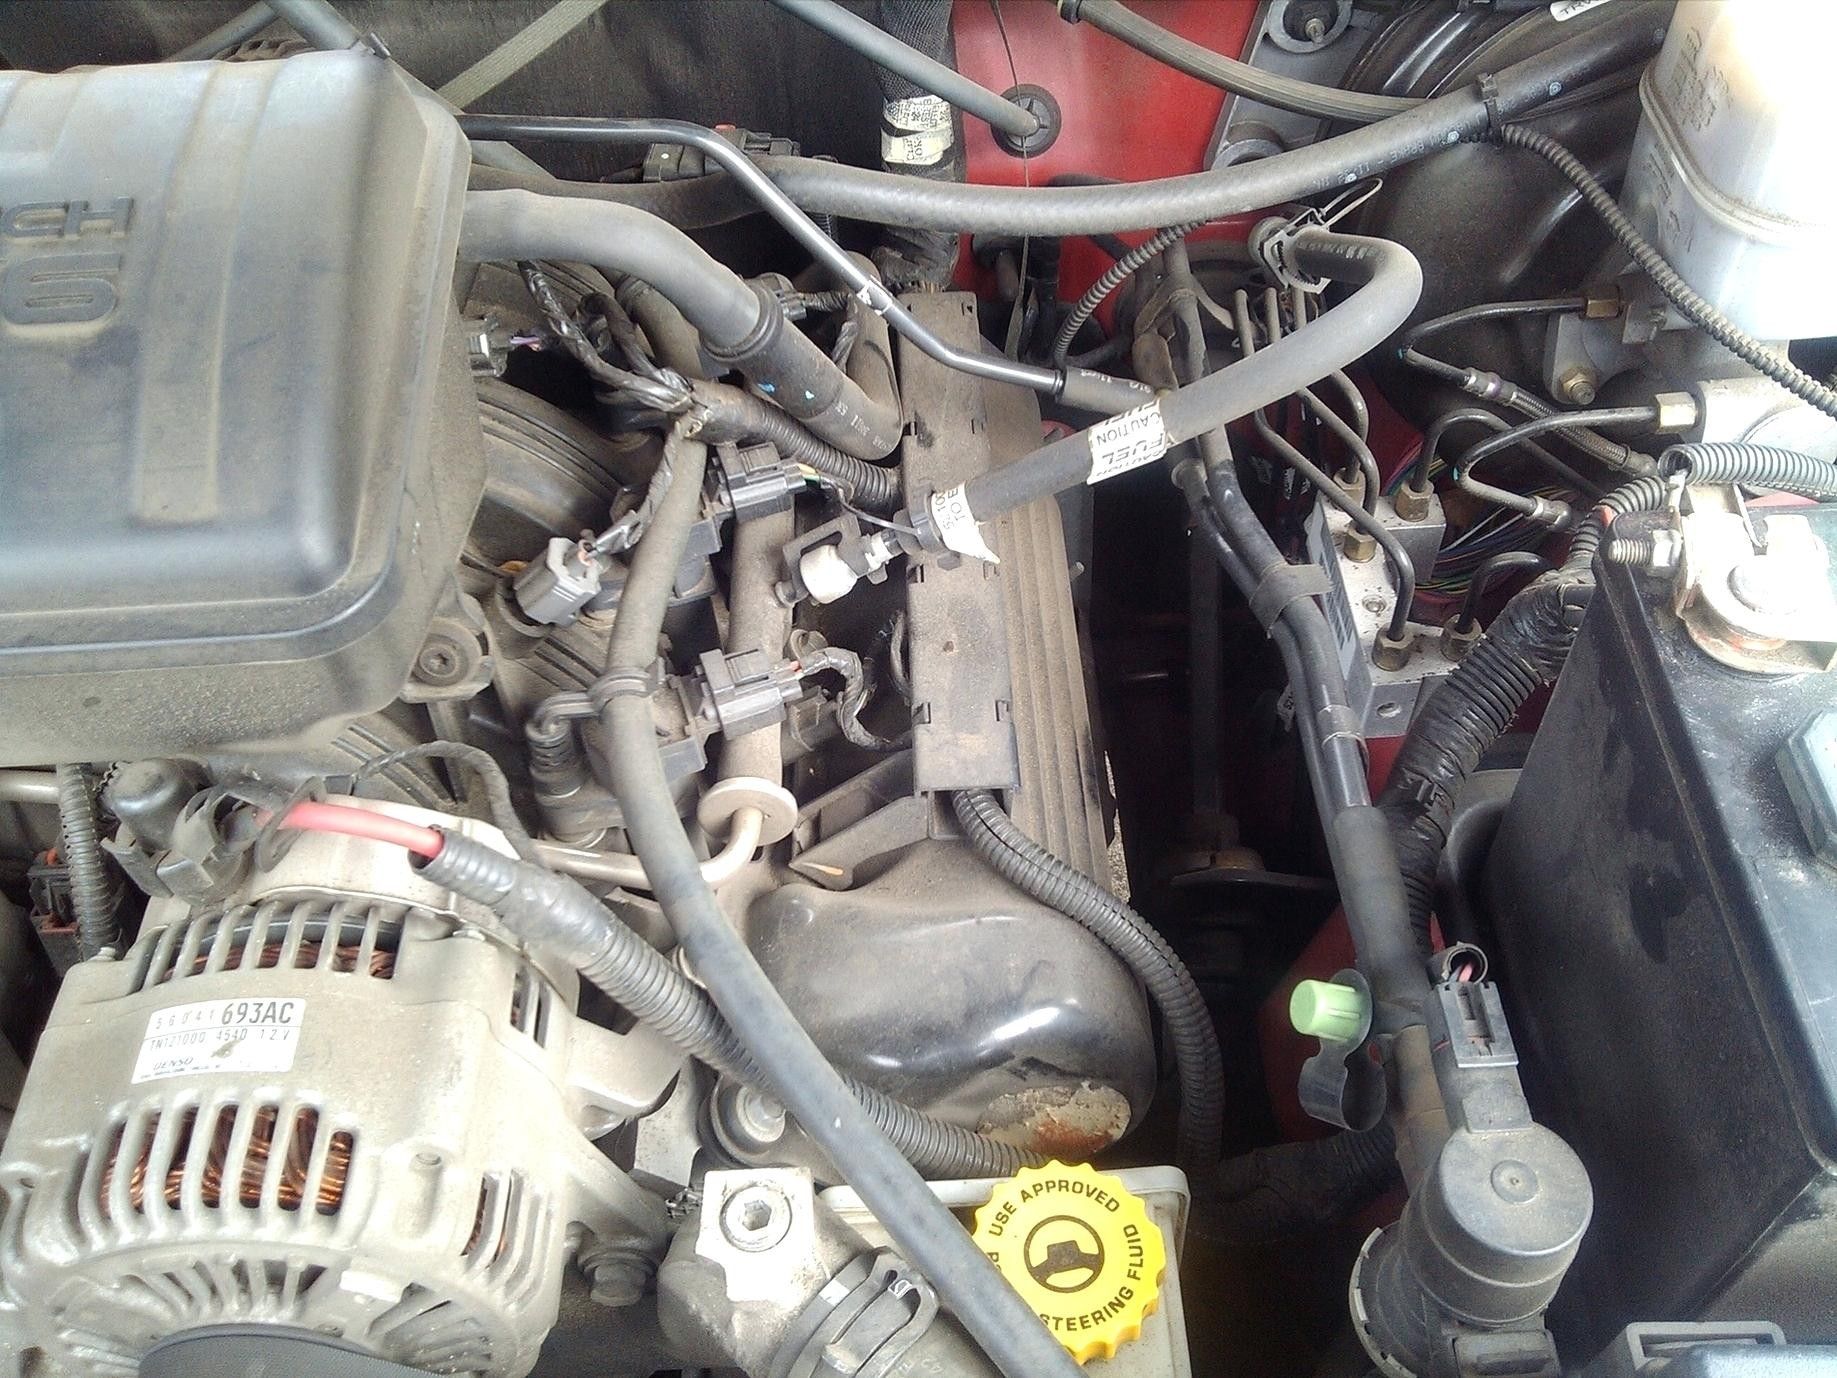 1988 ford voltage regulator wiring 2011 jeep liberty engine diagram lost jeeps bull view topic #14